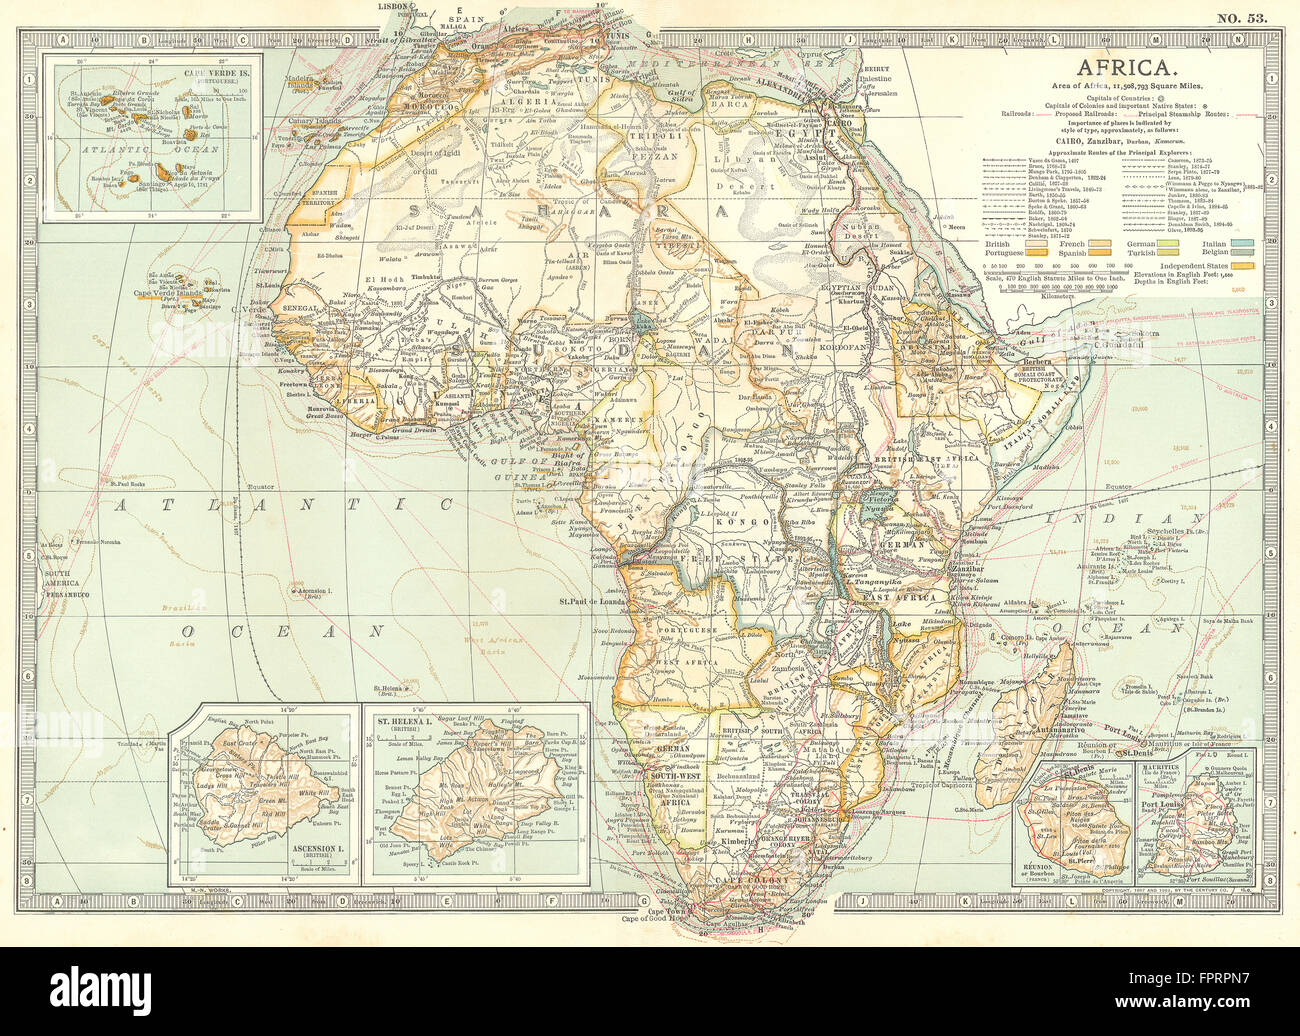 AFRICA  Cape Verde  Mauritius  Reunion  Ascension  St Helena islands     AFRICA  Cape Verde  Mauritius  Reunion  Ascension  St Helena islands  1903  map